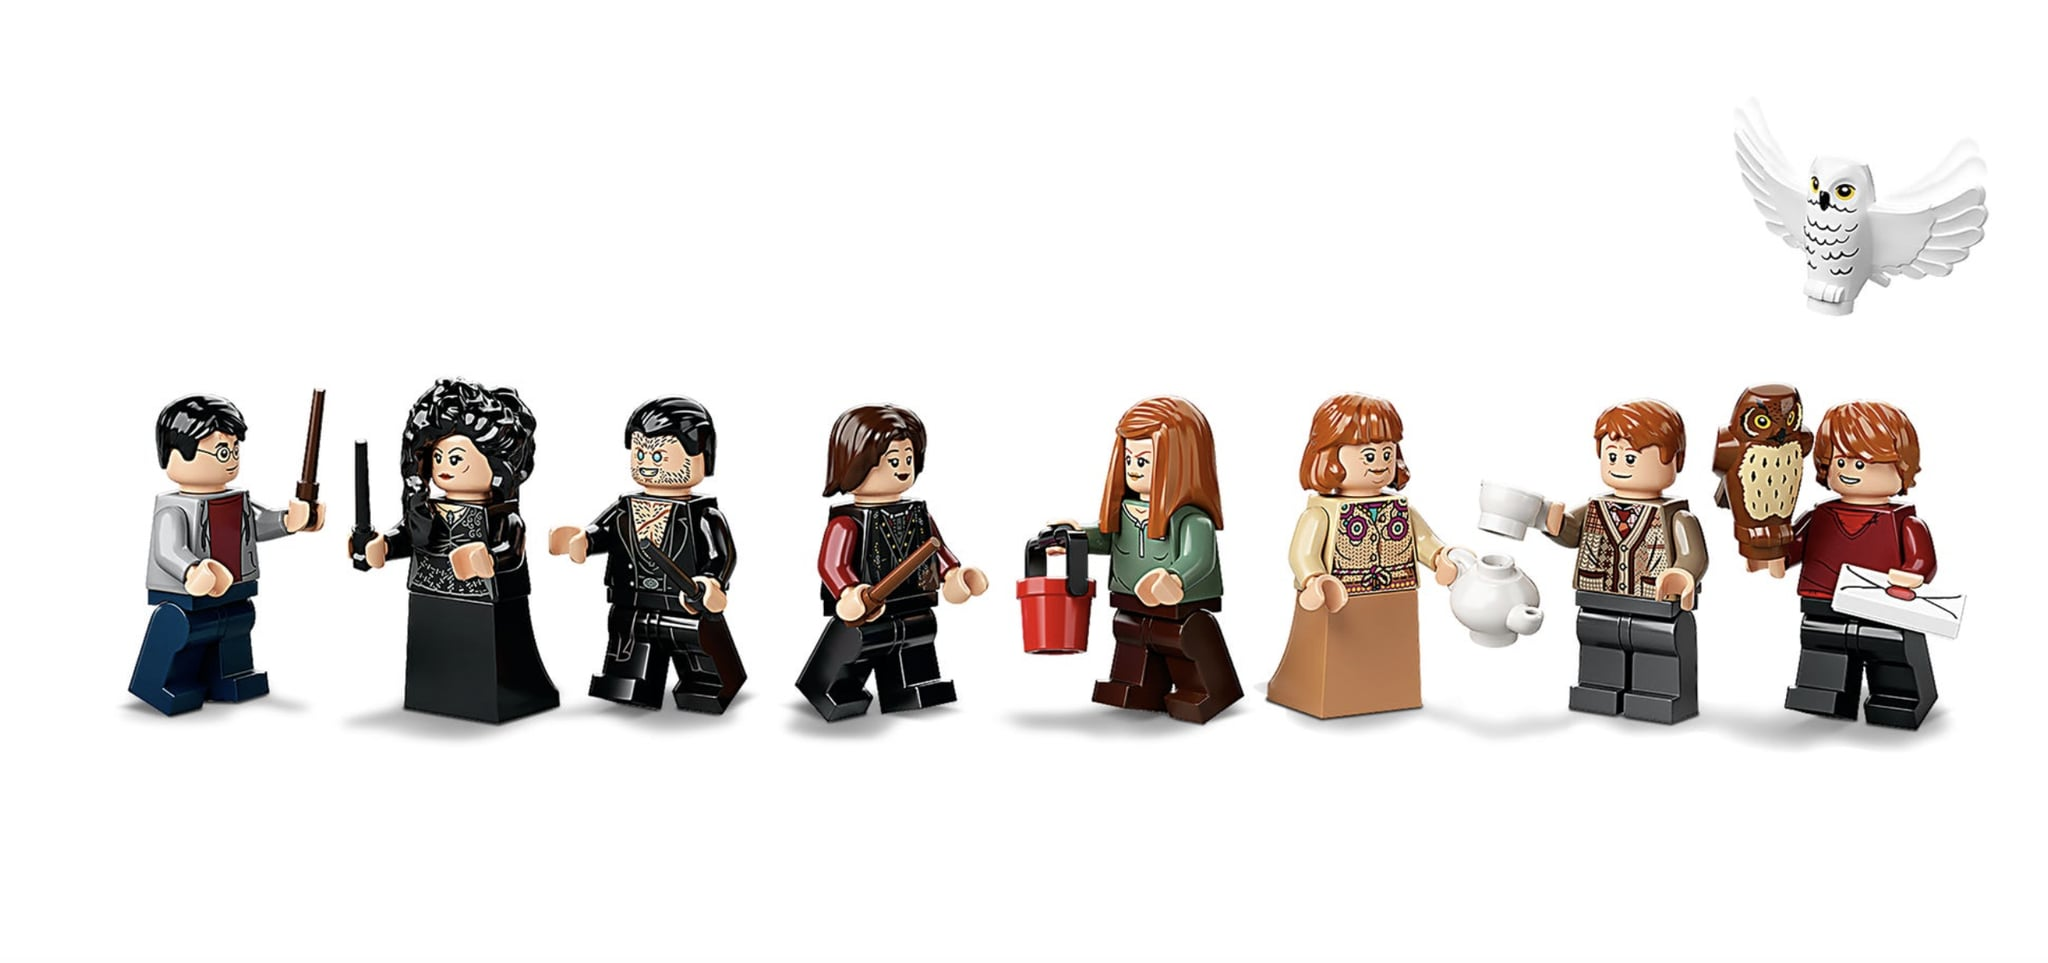 The Minifigures In The Lego Harry Potter Attack On The Burrow Set New Lego Harry Potter Sets 2020 Popsugar Uk Parenting Photo 19